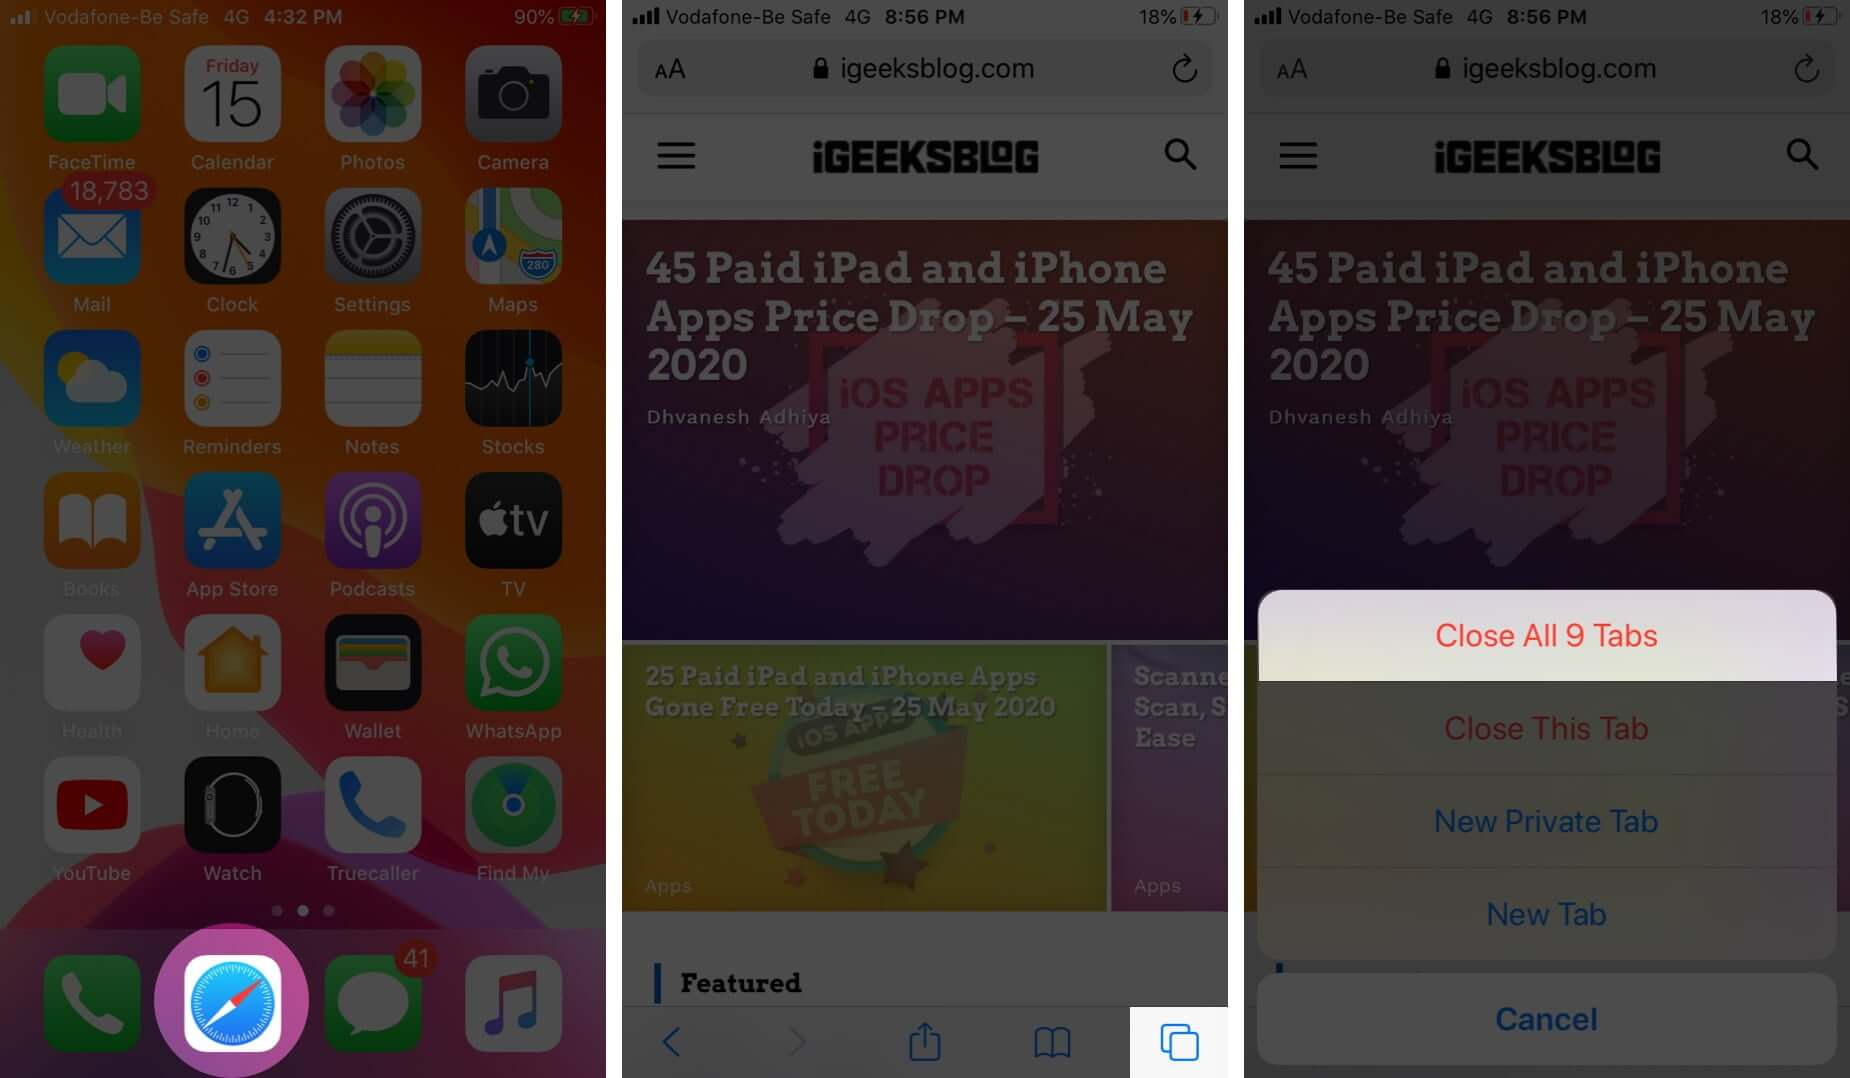 Close Multiple Safari Tabs at Once on iPhone